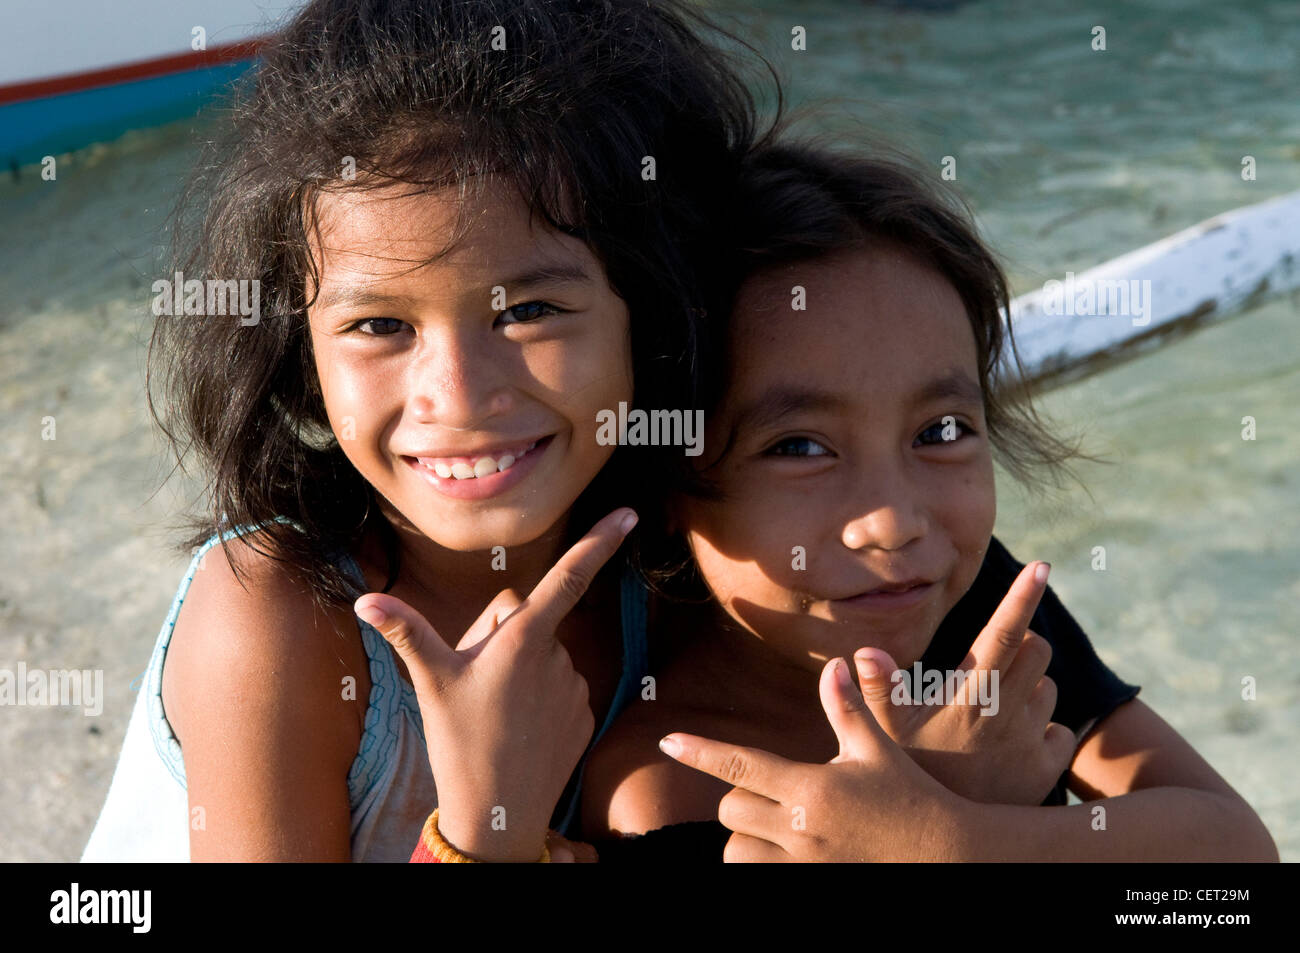 Philippines girls smiling stock photos philippines girls smiling cute filipino girls in cebu stock image altavistaventures Image collections